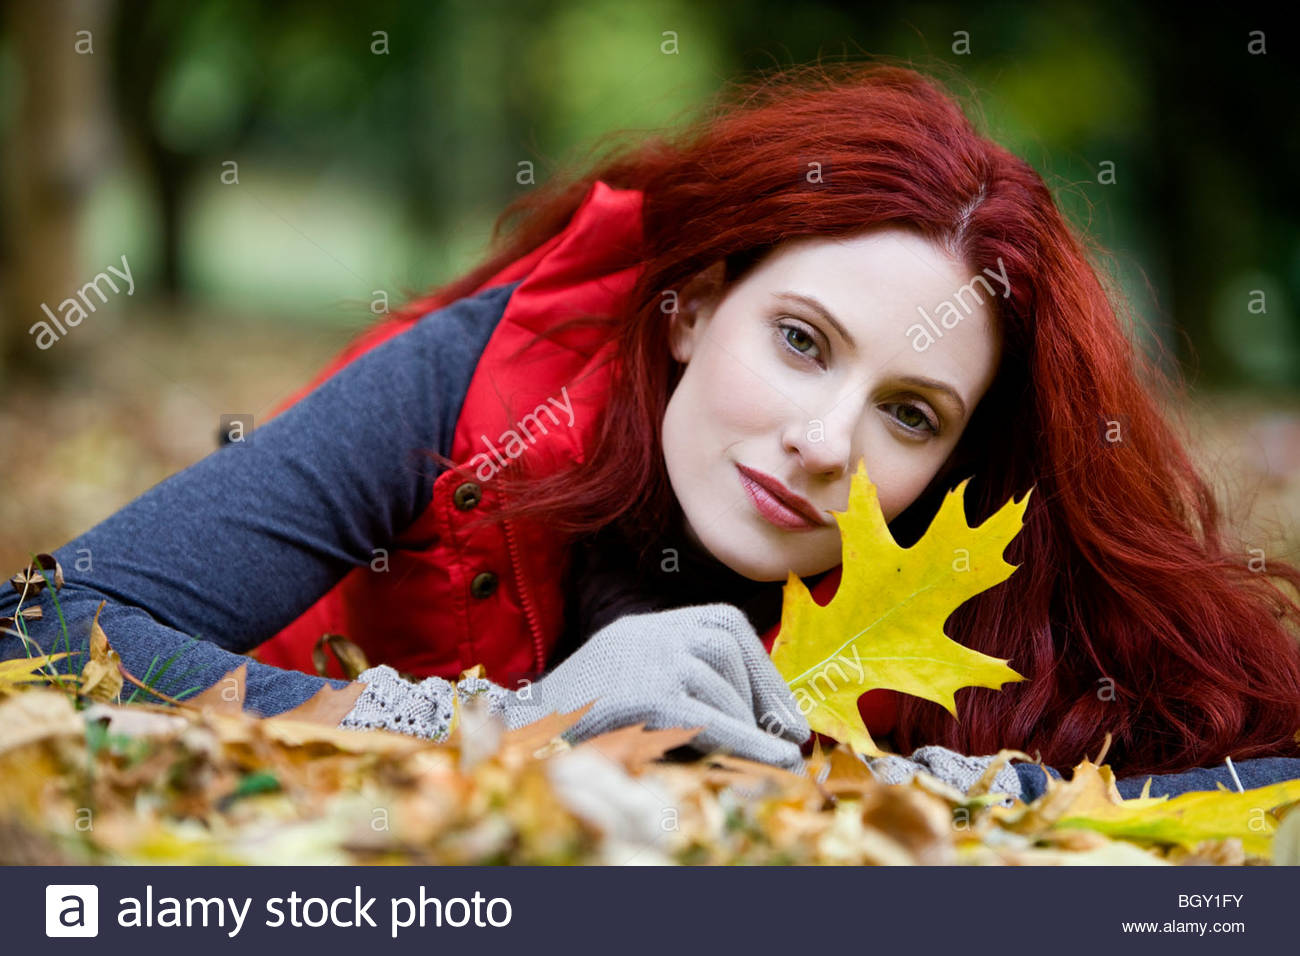 A young woman lying on the ground, holding an autumn leaf - Stock Image